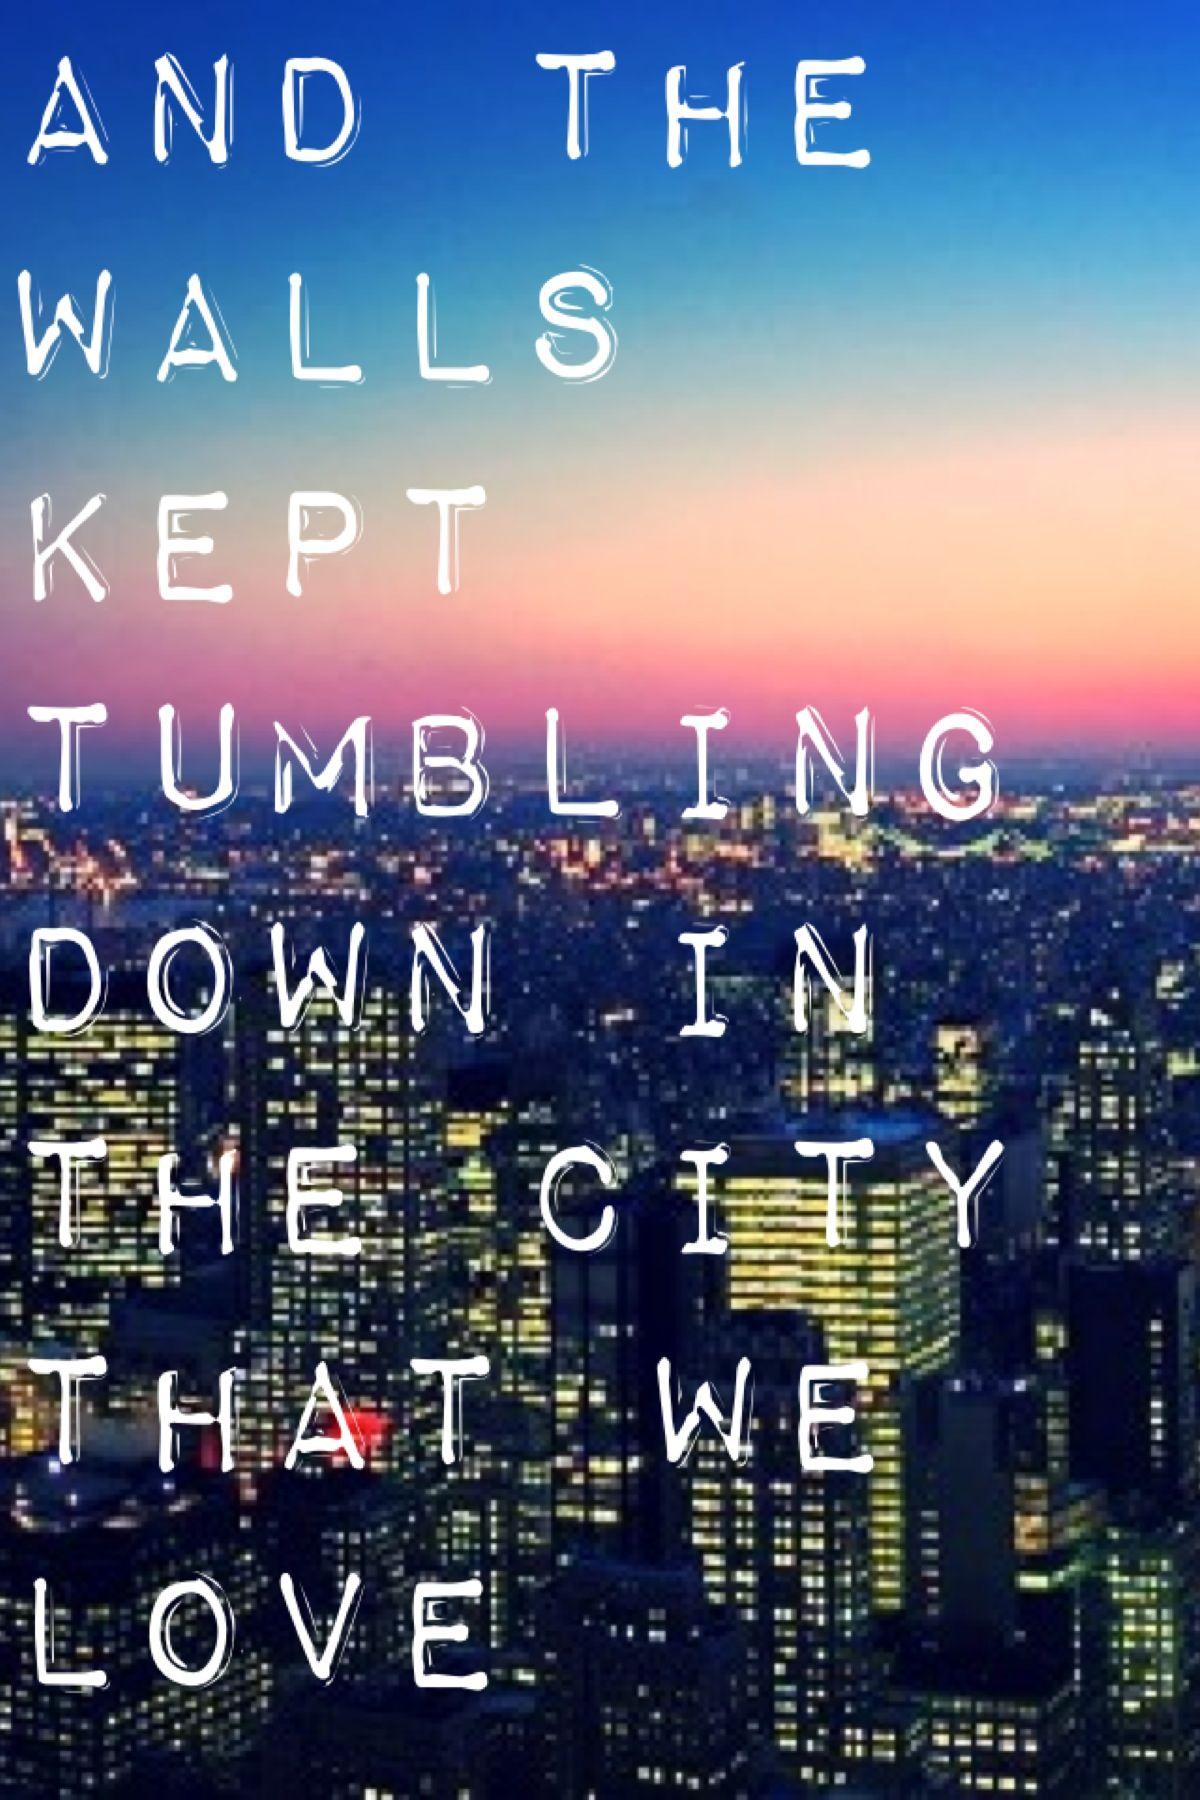 Bastille - Pompeii ... This song reminds us of Owen and Columbus and grief and coping! It's almost perfect in explaining the despair!